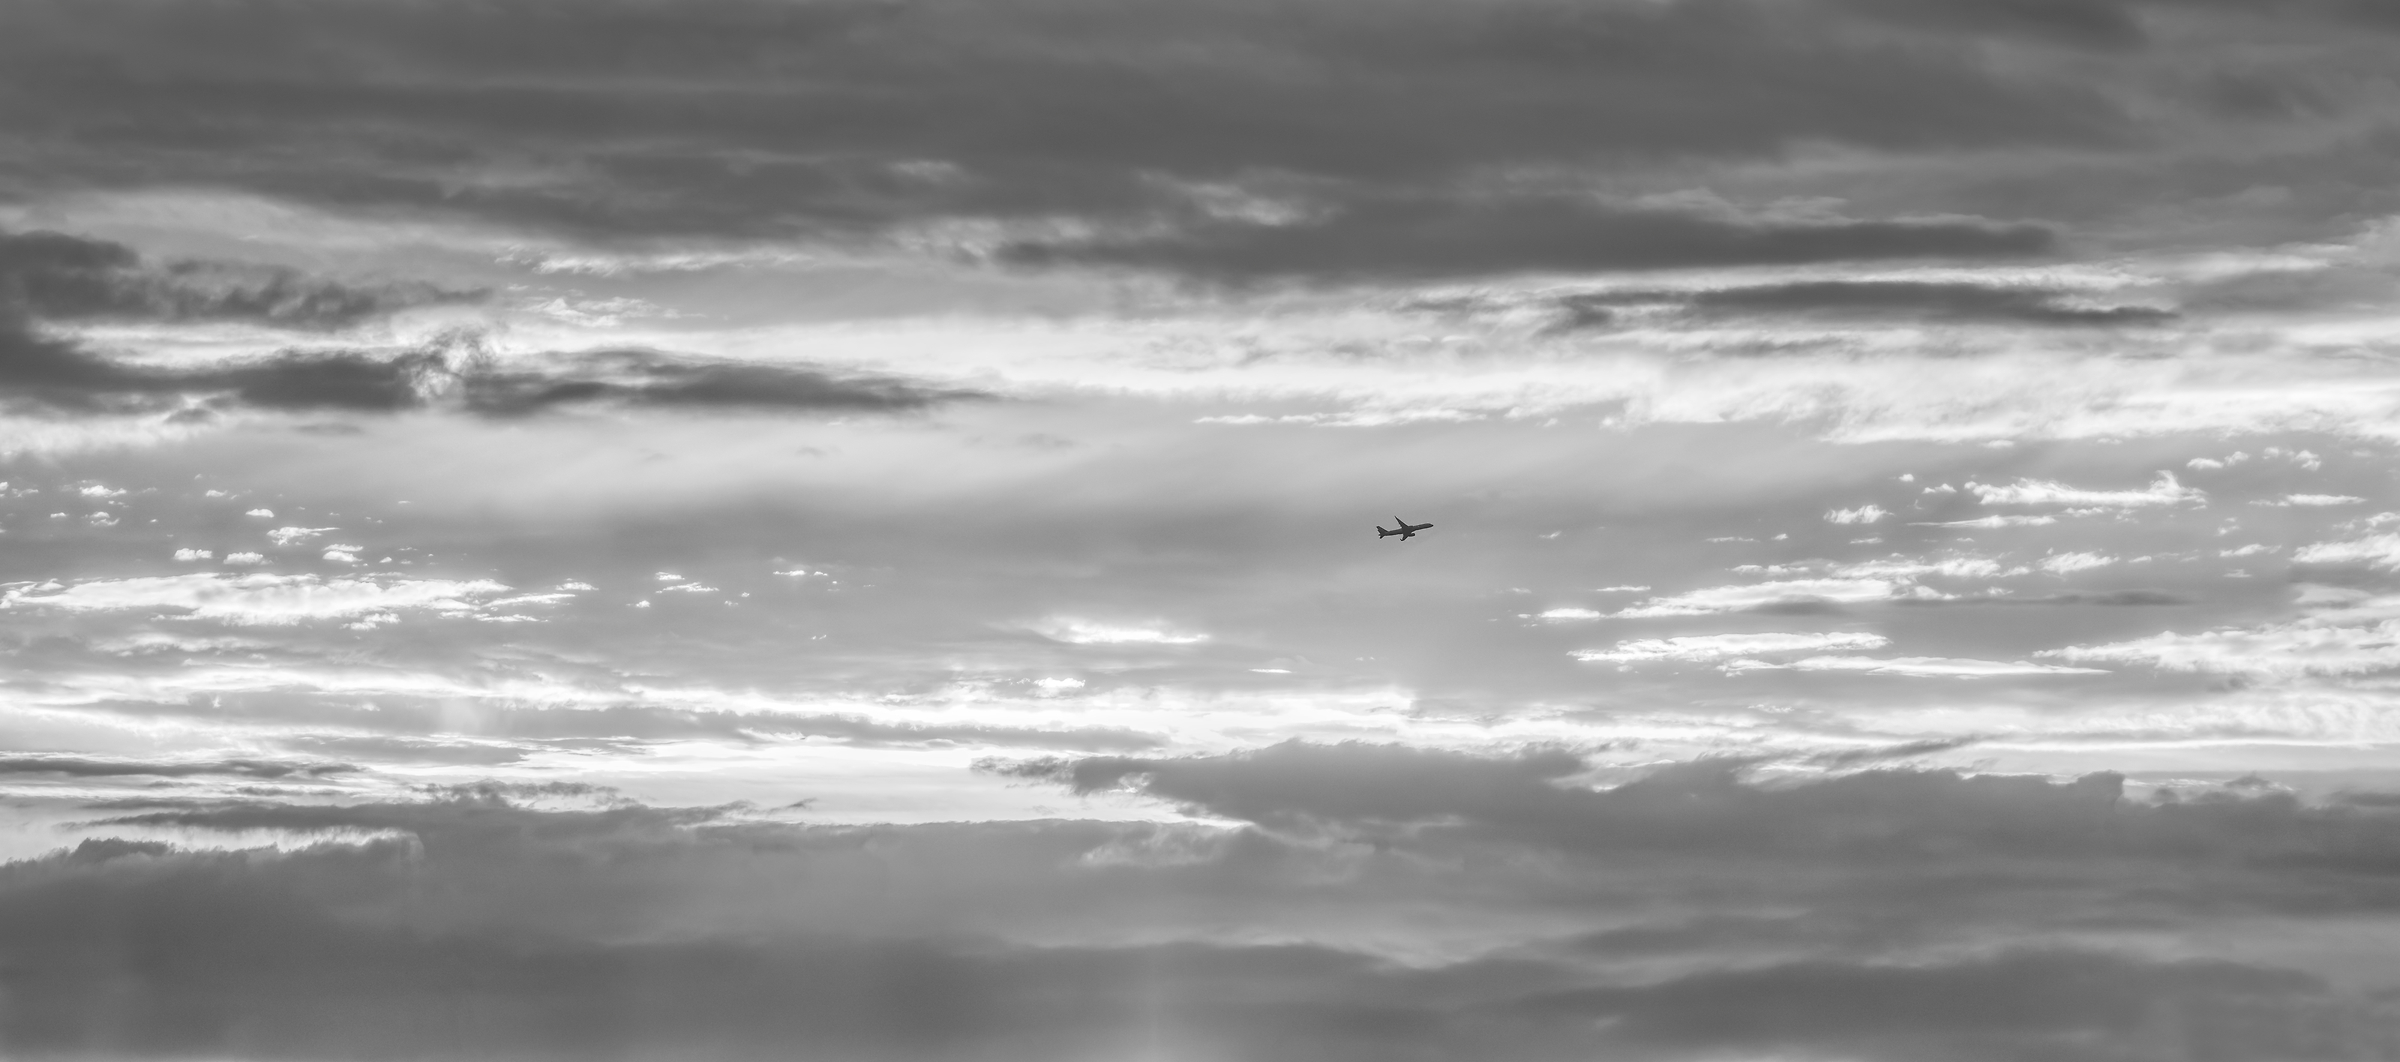 328 megapixels! A very high resolution, black & white VAST photo print of a plane with a sunset behind it; fine art photograph created by Dan Piech in New York City